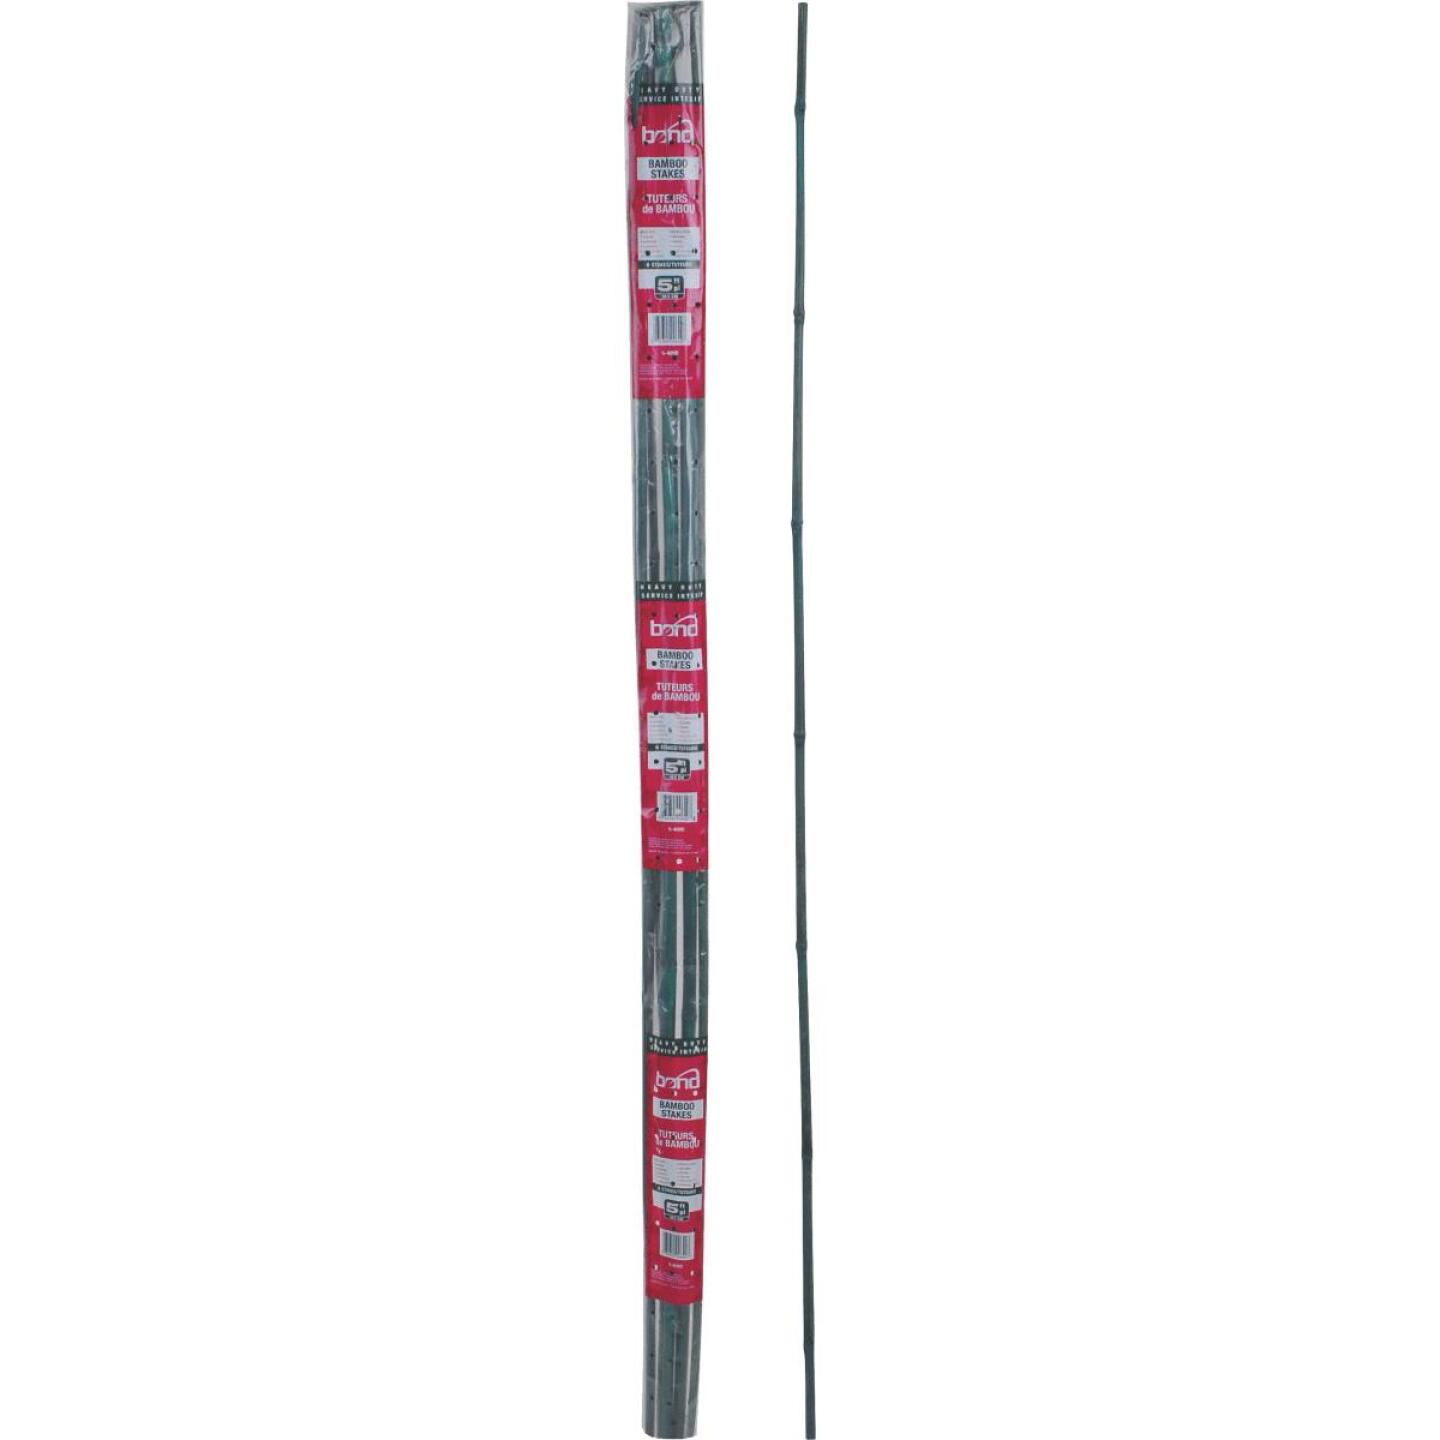 Bond 6 Ft. Green Bamboo Plant Stakes (6-Pack) Image 2